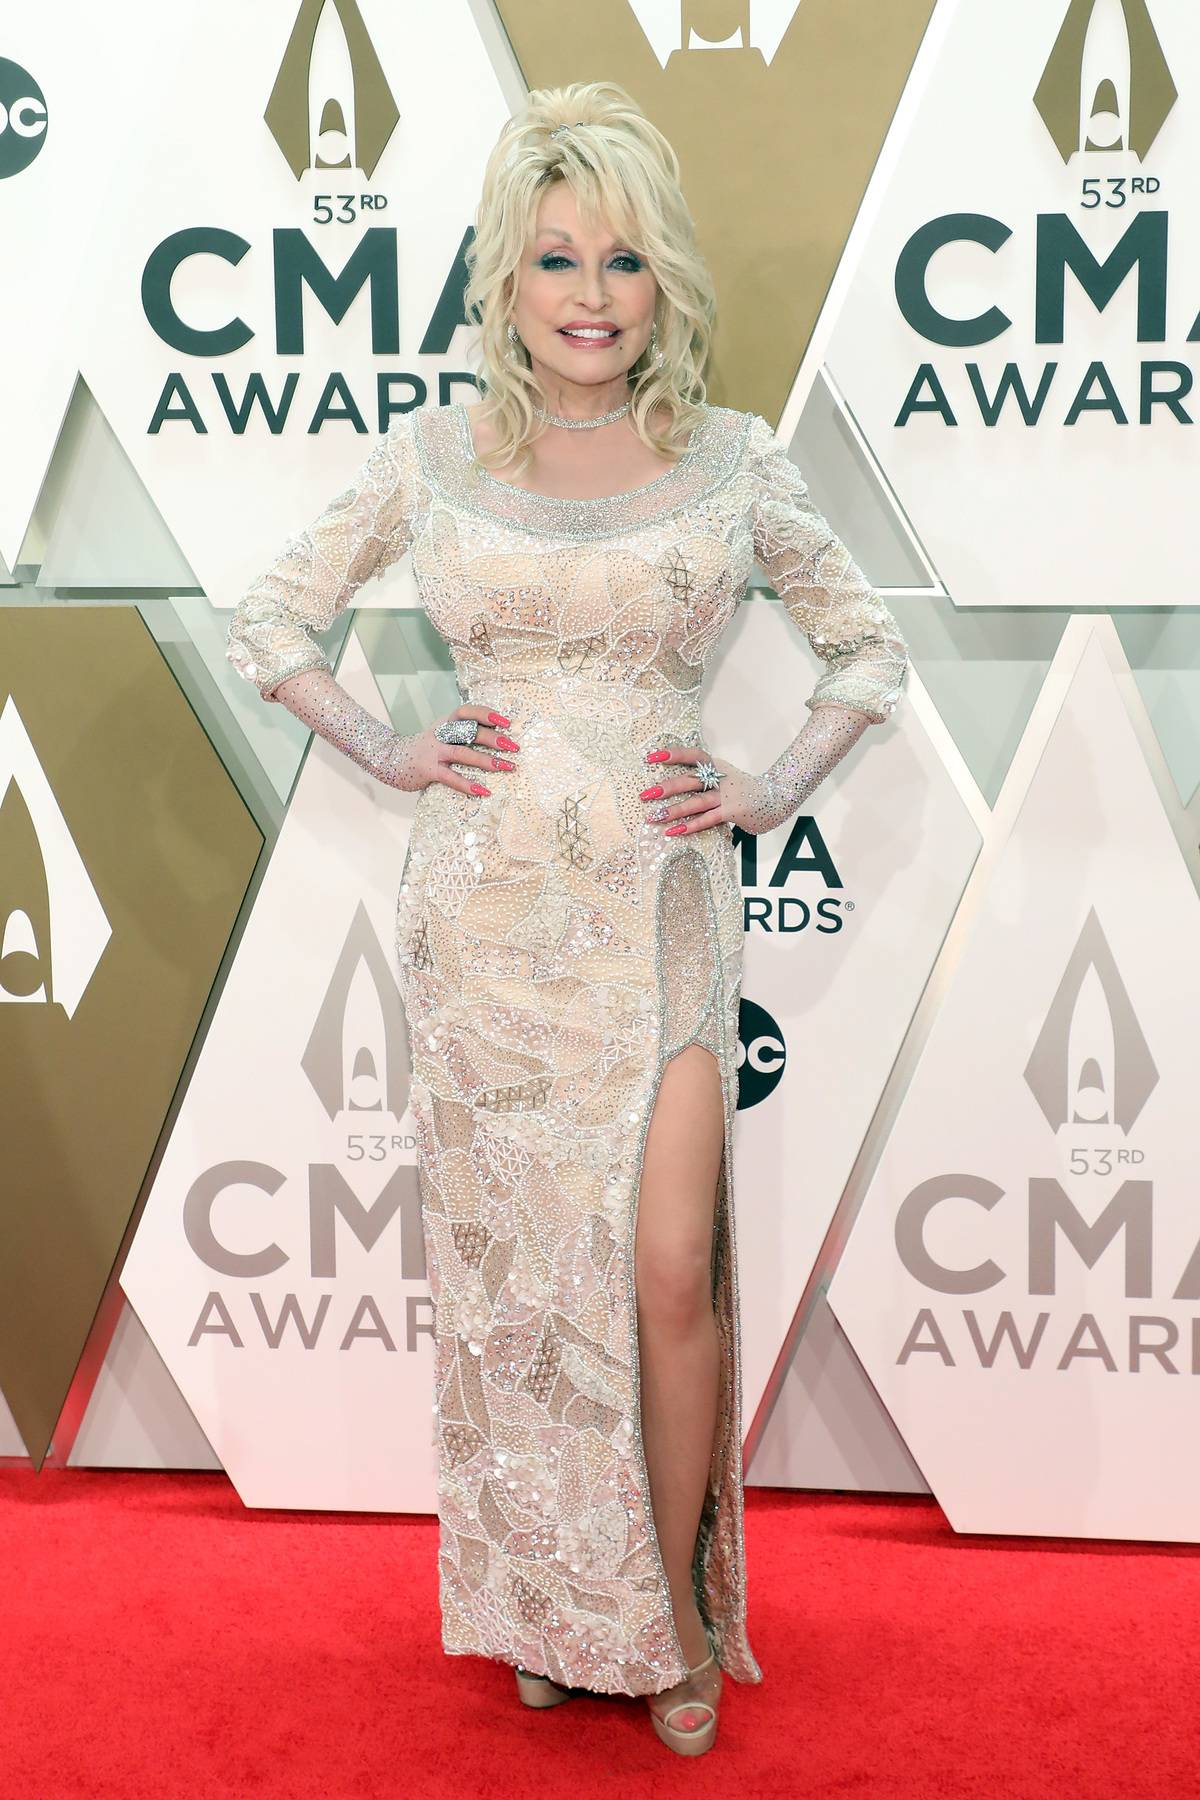 The 53rd Annual CMA Awards - NASHVILLE, TENNESSEE - NOVEMBER 13: (FOR EDITORIAL USE ONLY) Dolly Parton attends the 53nd annual CMA Awards at Bridgestone Arena on November 13, 2019 in Nashville, Tennessee.